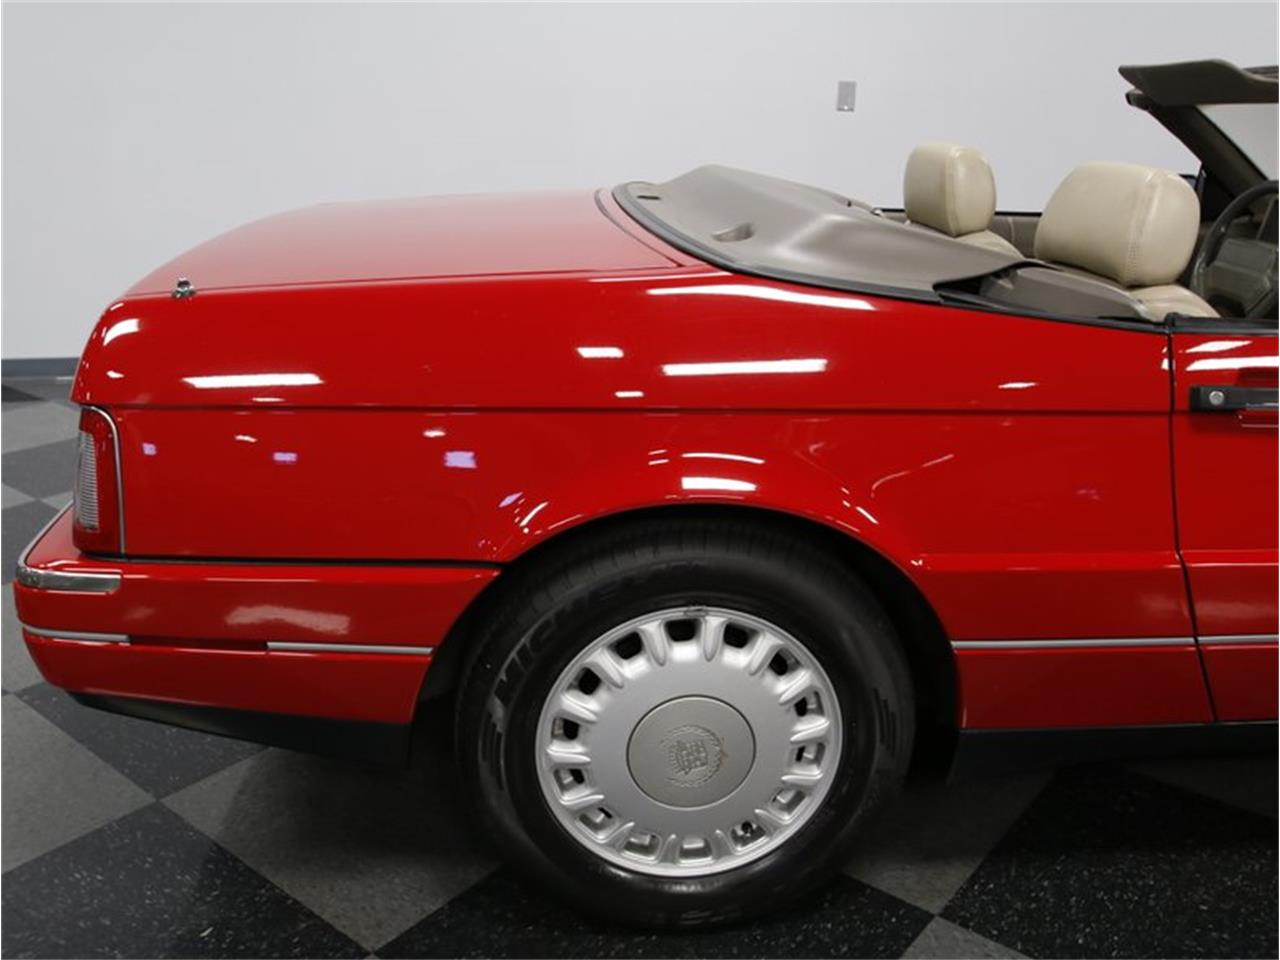 Large Picture of 1993 Cadillac Allante located in North Carolina - $11,995.00 - LDMY